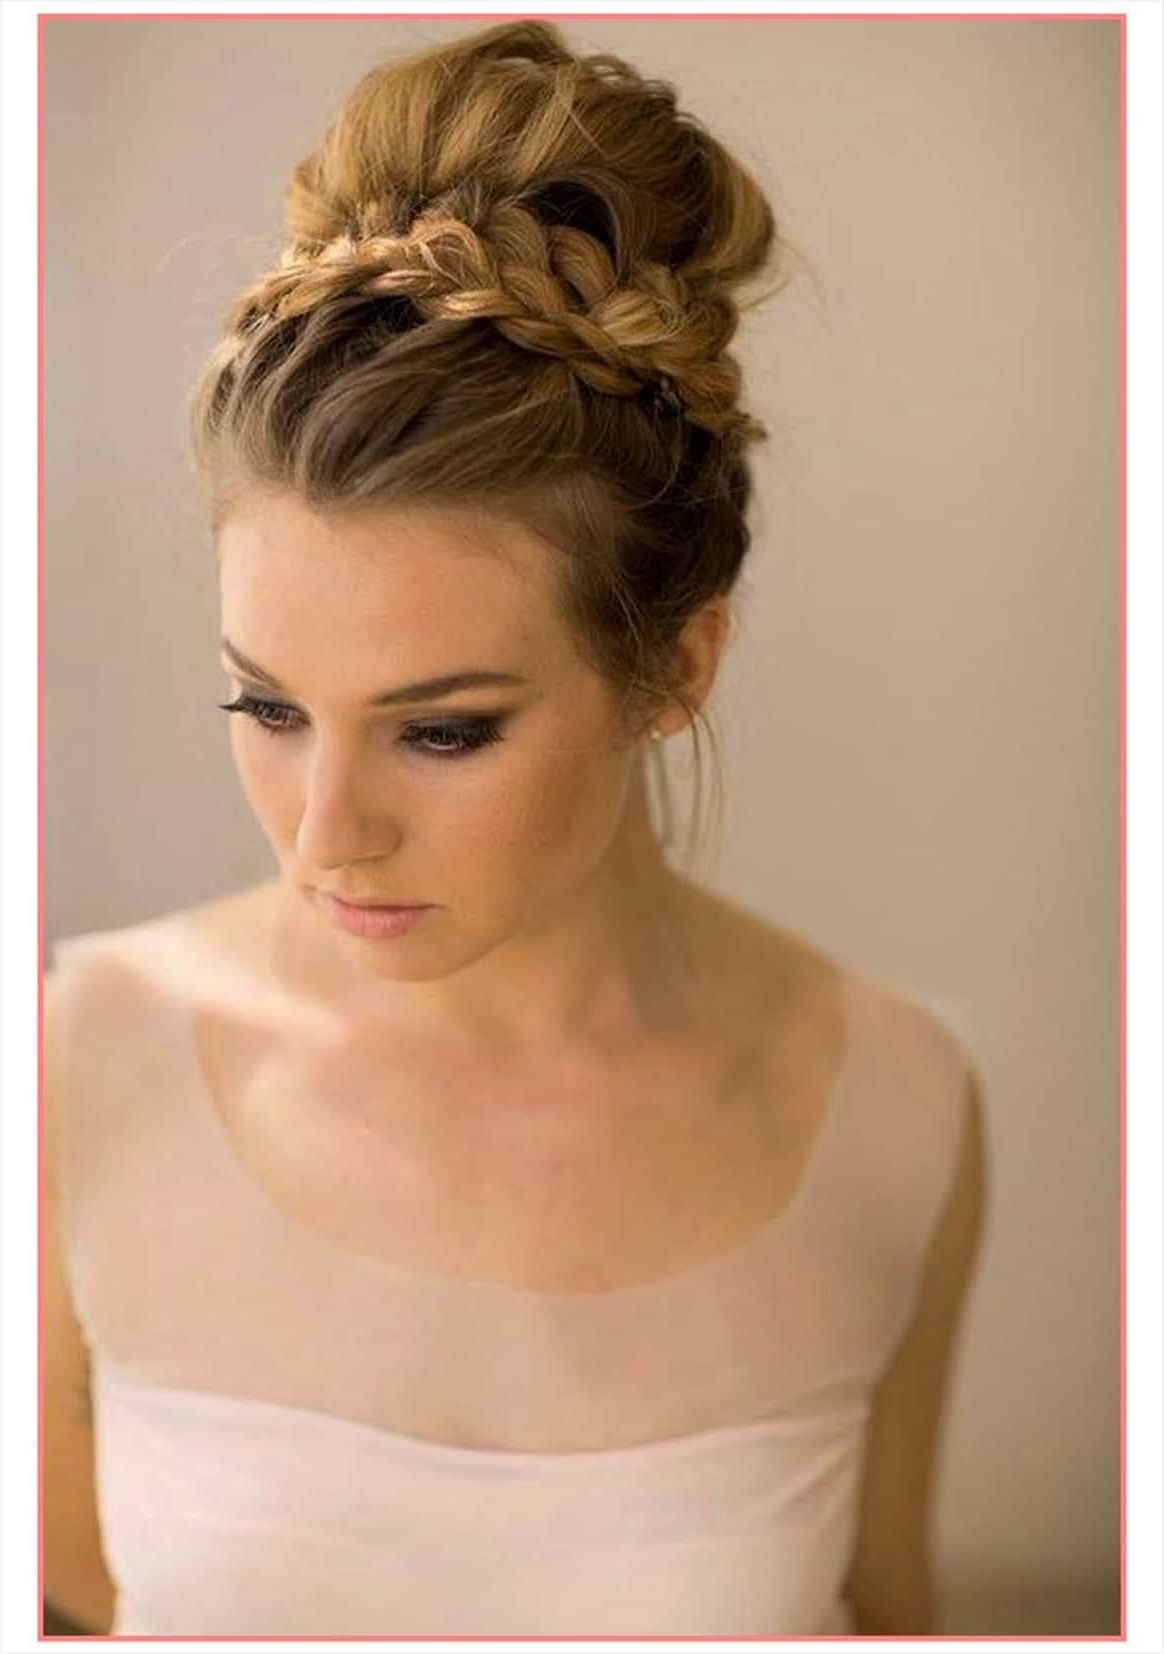 41 Cute Hairstyles For Wedding Guests | Hair | Pinterest | Wedding Throughout Hairstyles For Short Hair Wedding Guest (View 14 of 25)